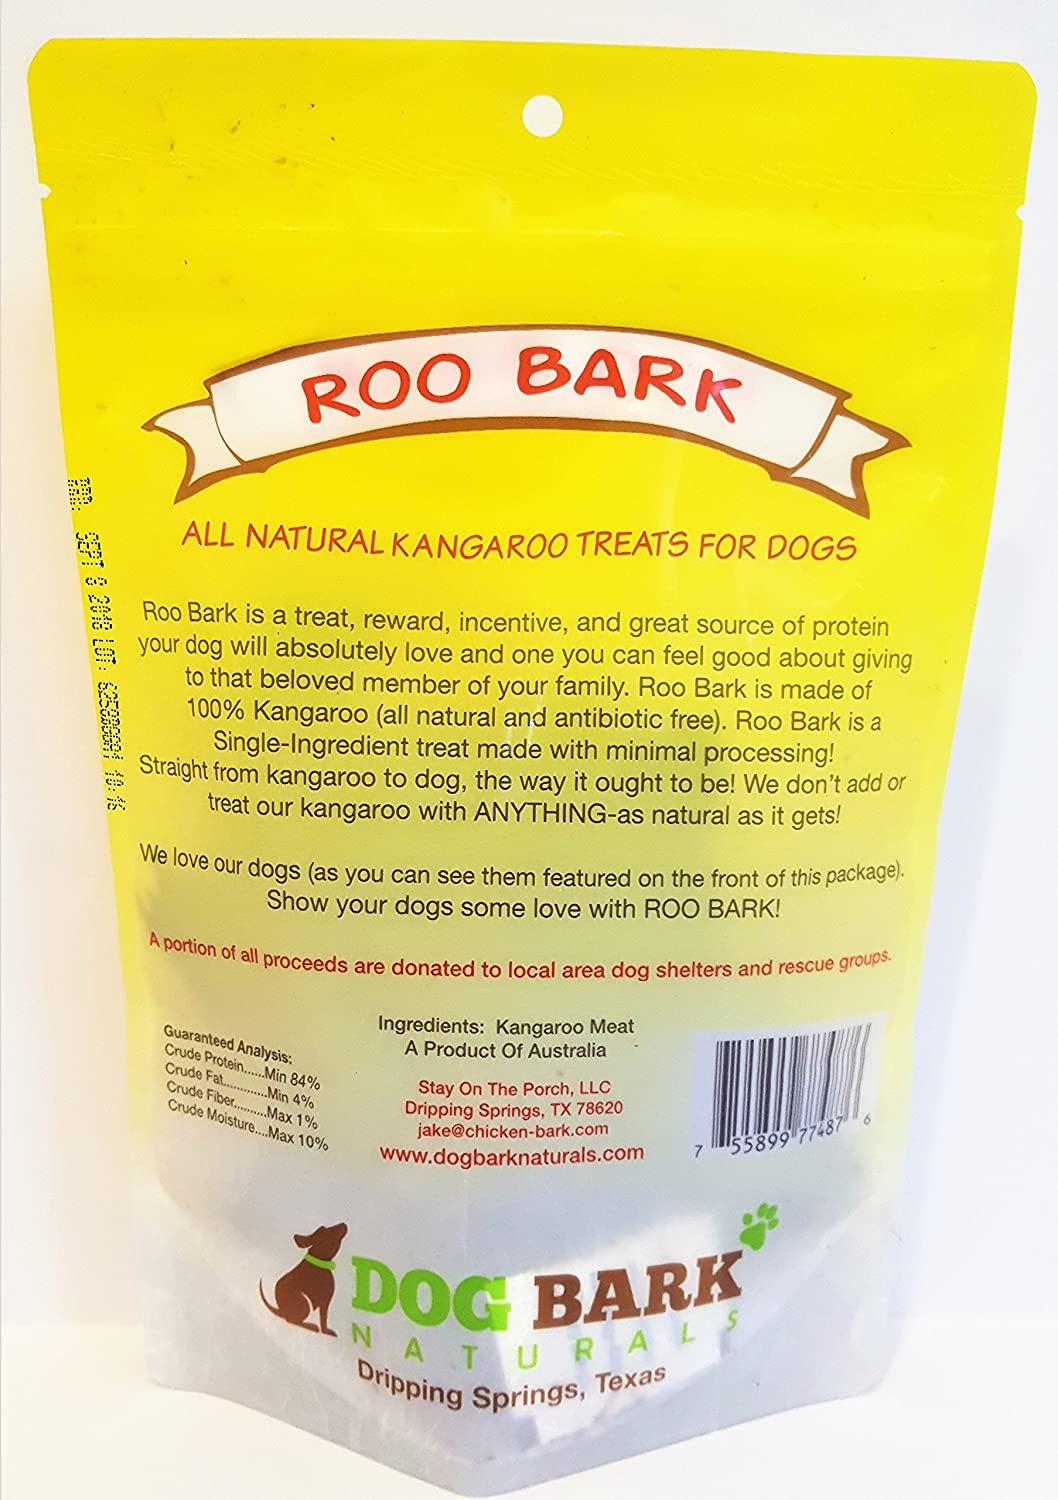 Amazon.com : Roo Bark - As Natural As It Gets - 1 Ingredient!!! Responsibly Source In Australia and Made USA, Portion Of All Proceeds Donated To Dogs In ...